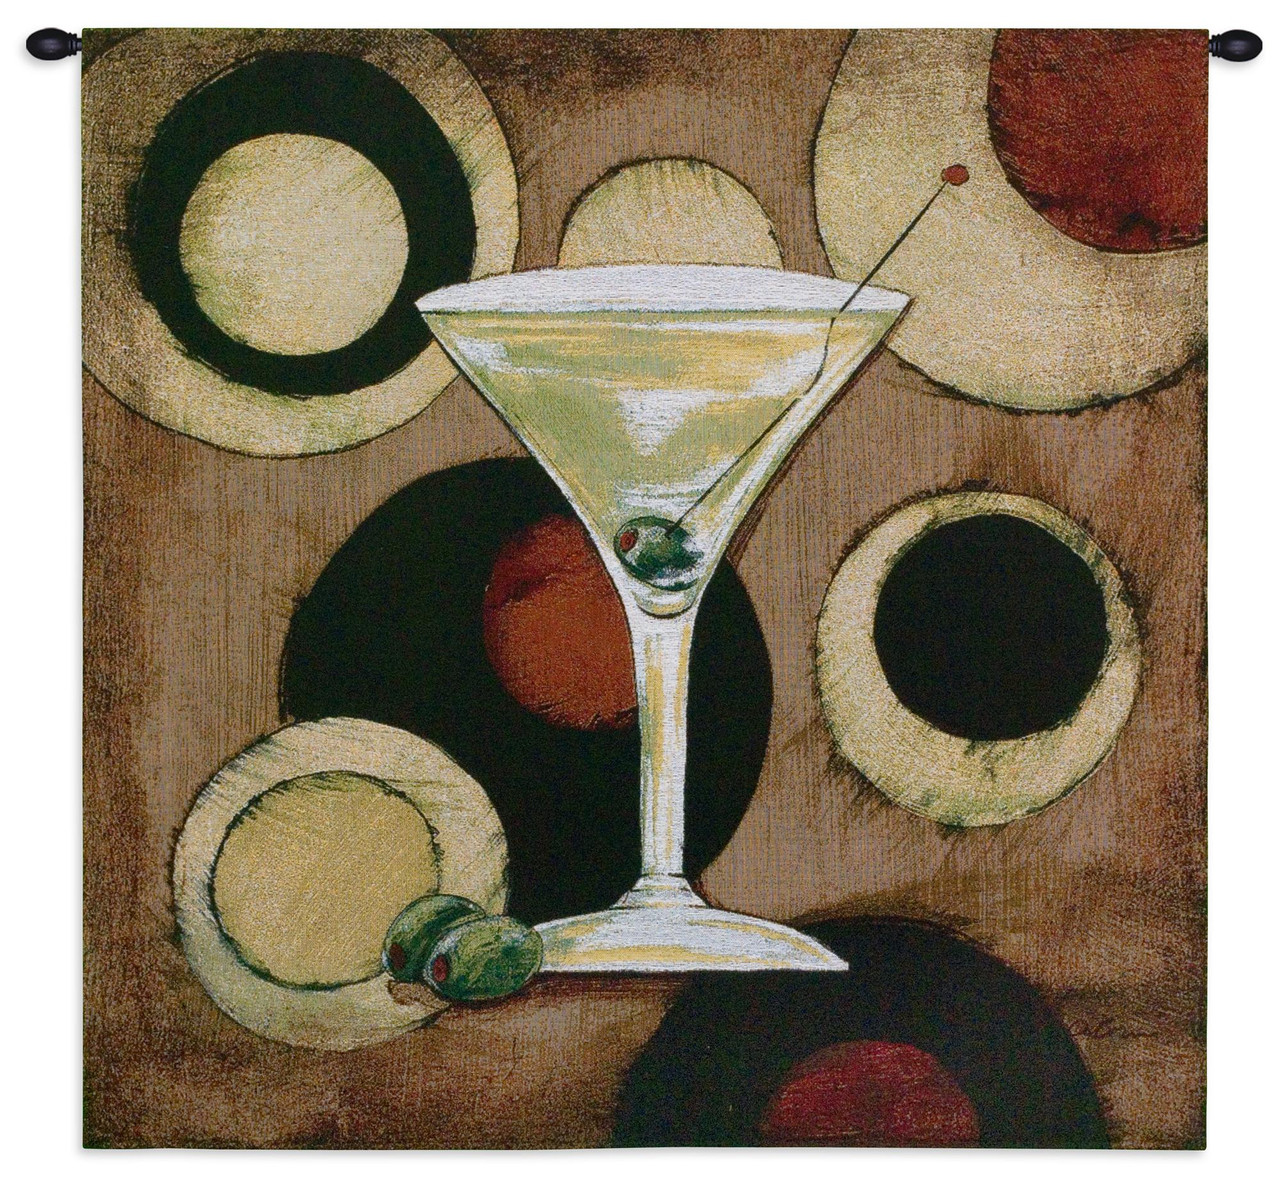 Martini Cocktail Woven Tapestry Wall Art Hanging For Home Living Room Office Decor 1960s Modern Artwork Of A Watercolor Turned Textile 100